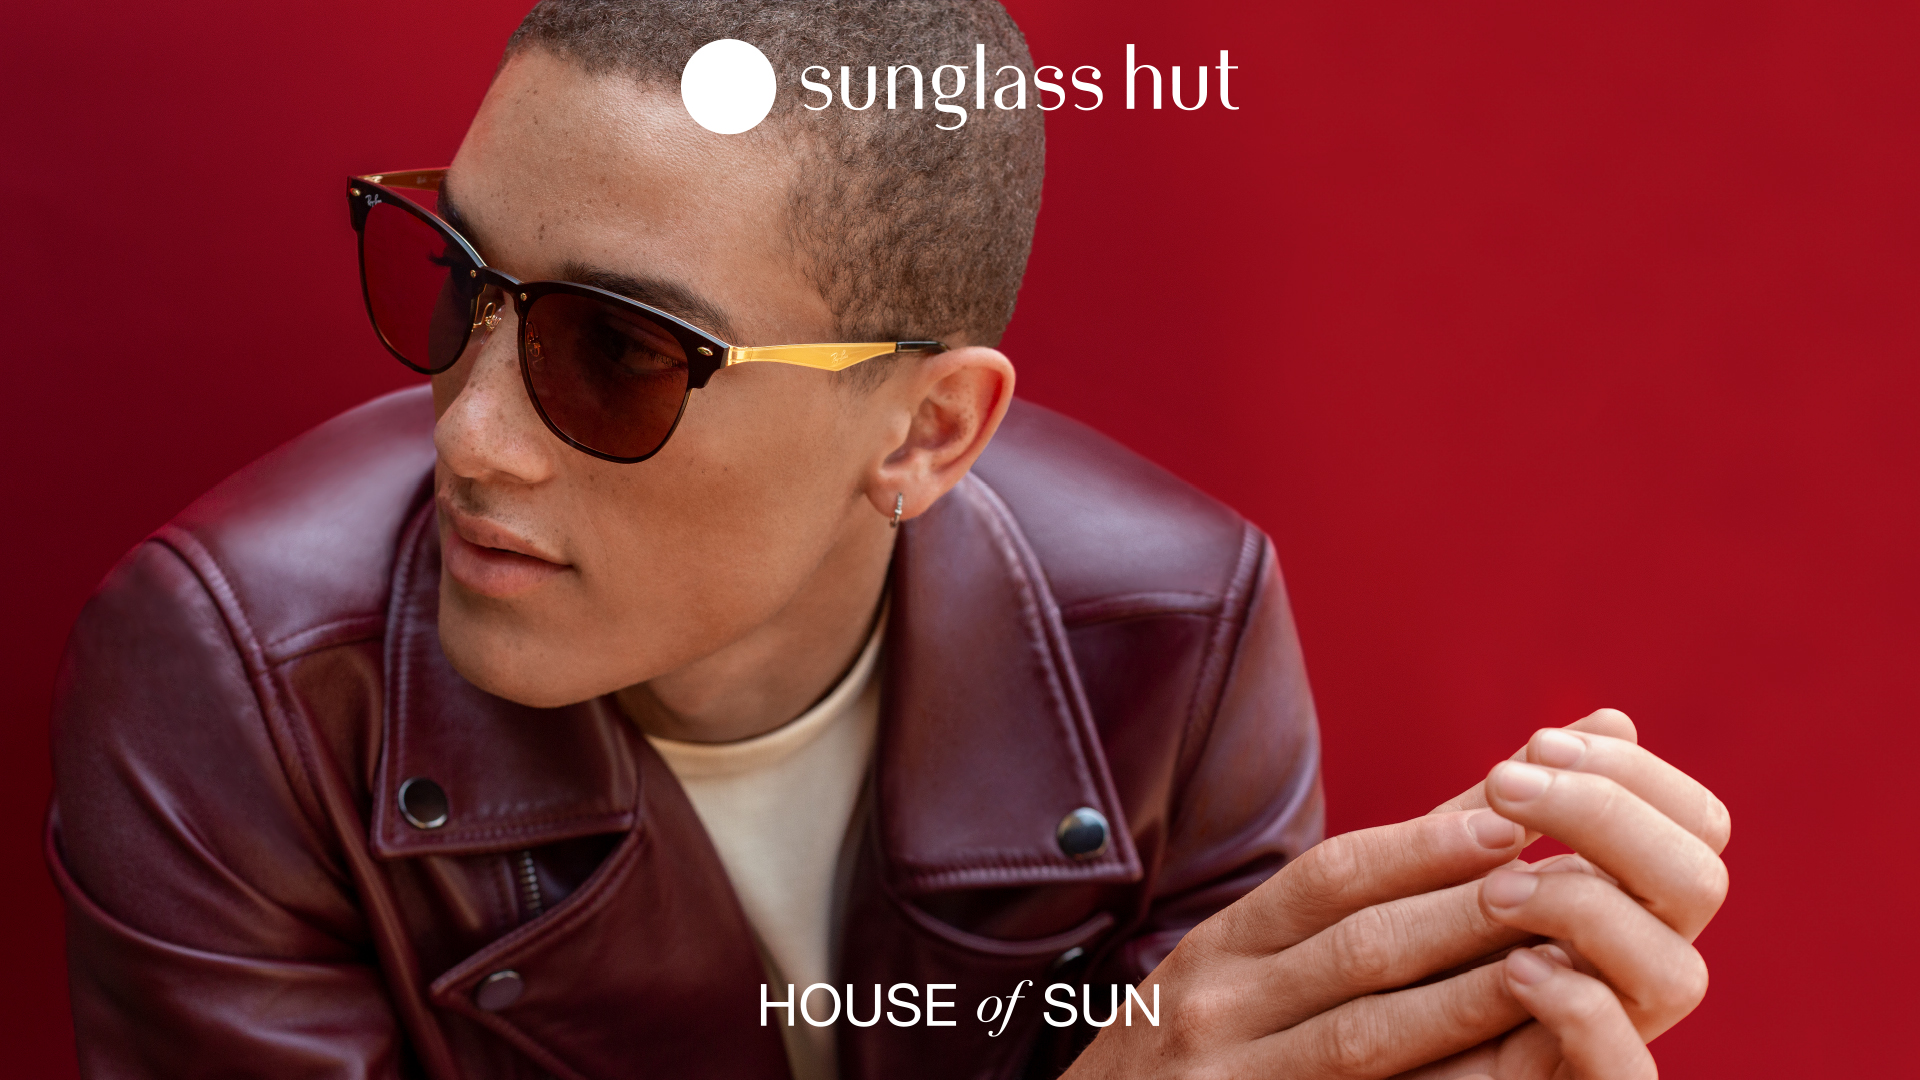 Main Image Sunglass Hut